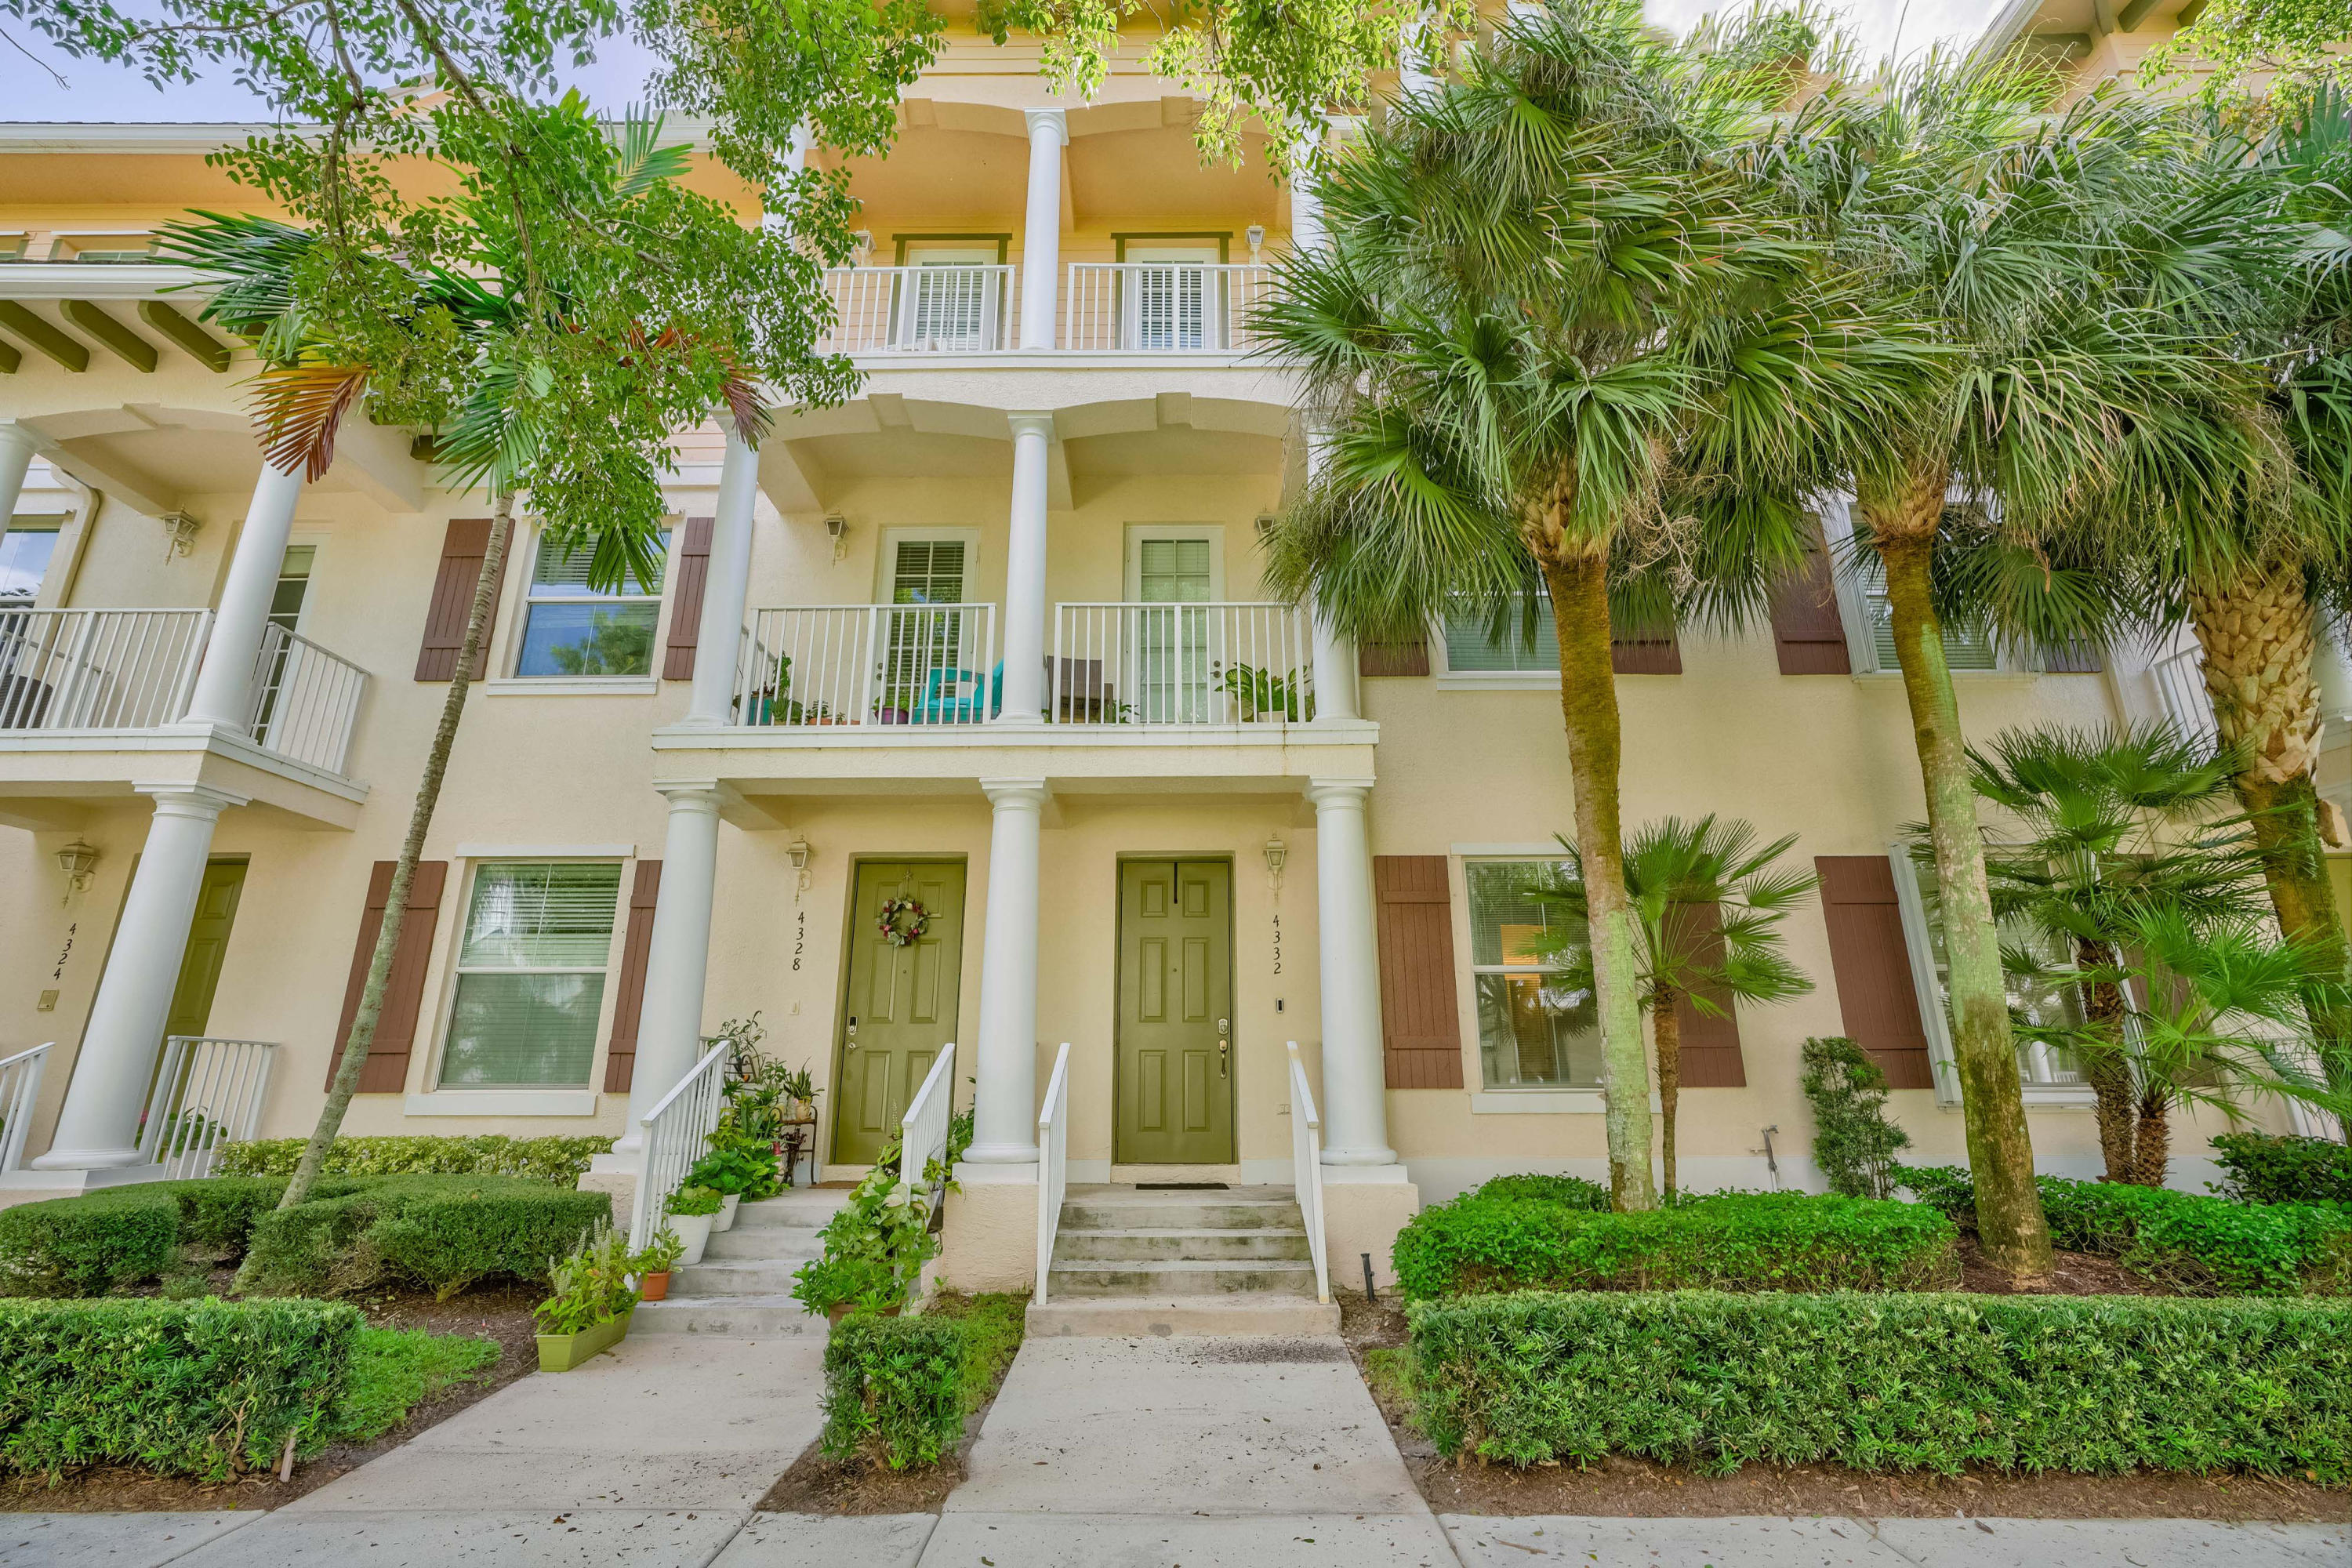 4332 Blowing Point Place, Jupiter, Florida 33458, 3 Bedrooms Bedrooms, ,3.1 BathroomsBathrooms,A,Townhouse,Blowing Point,RX-10547017